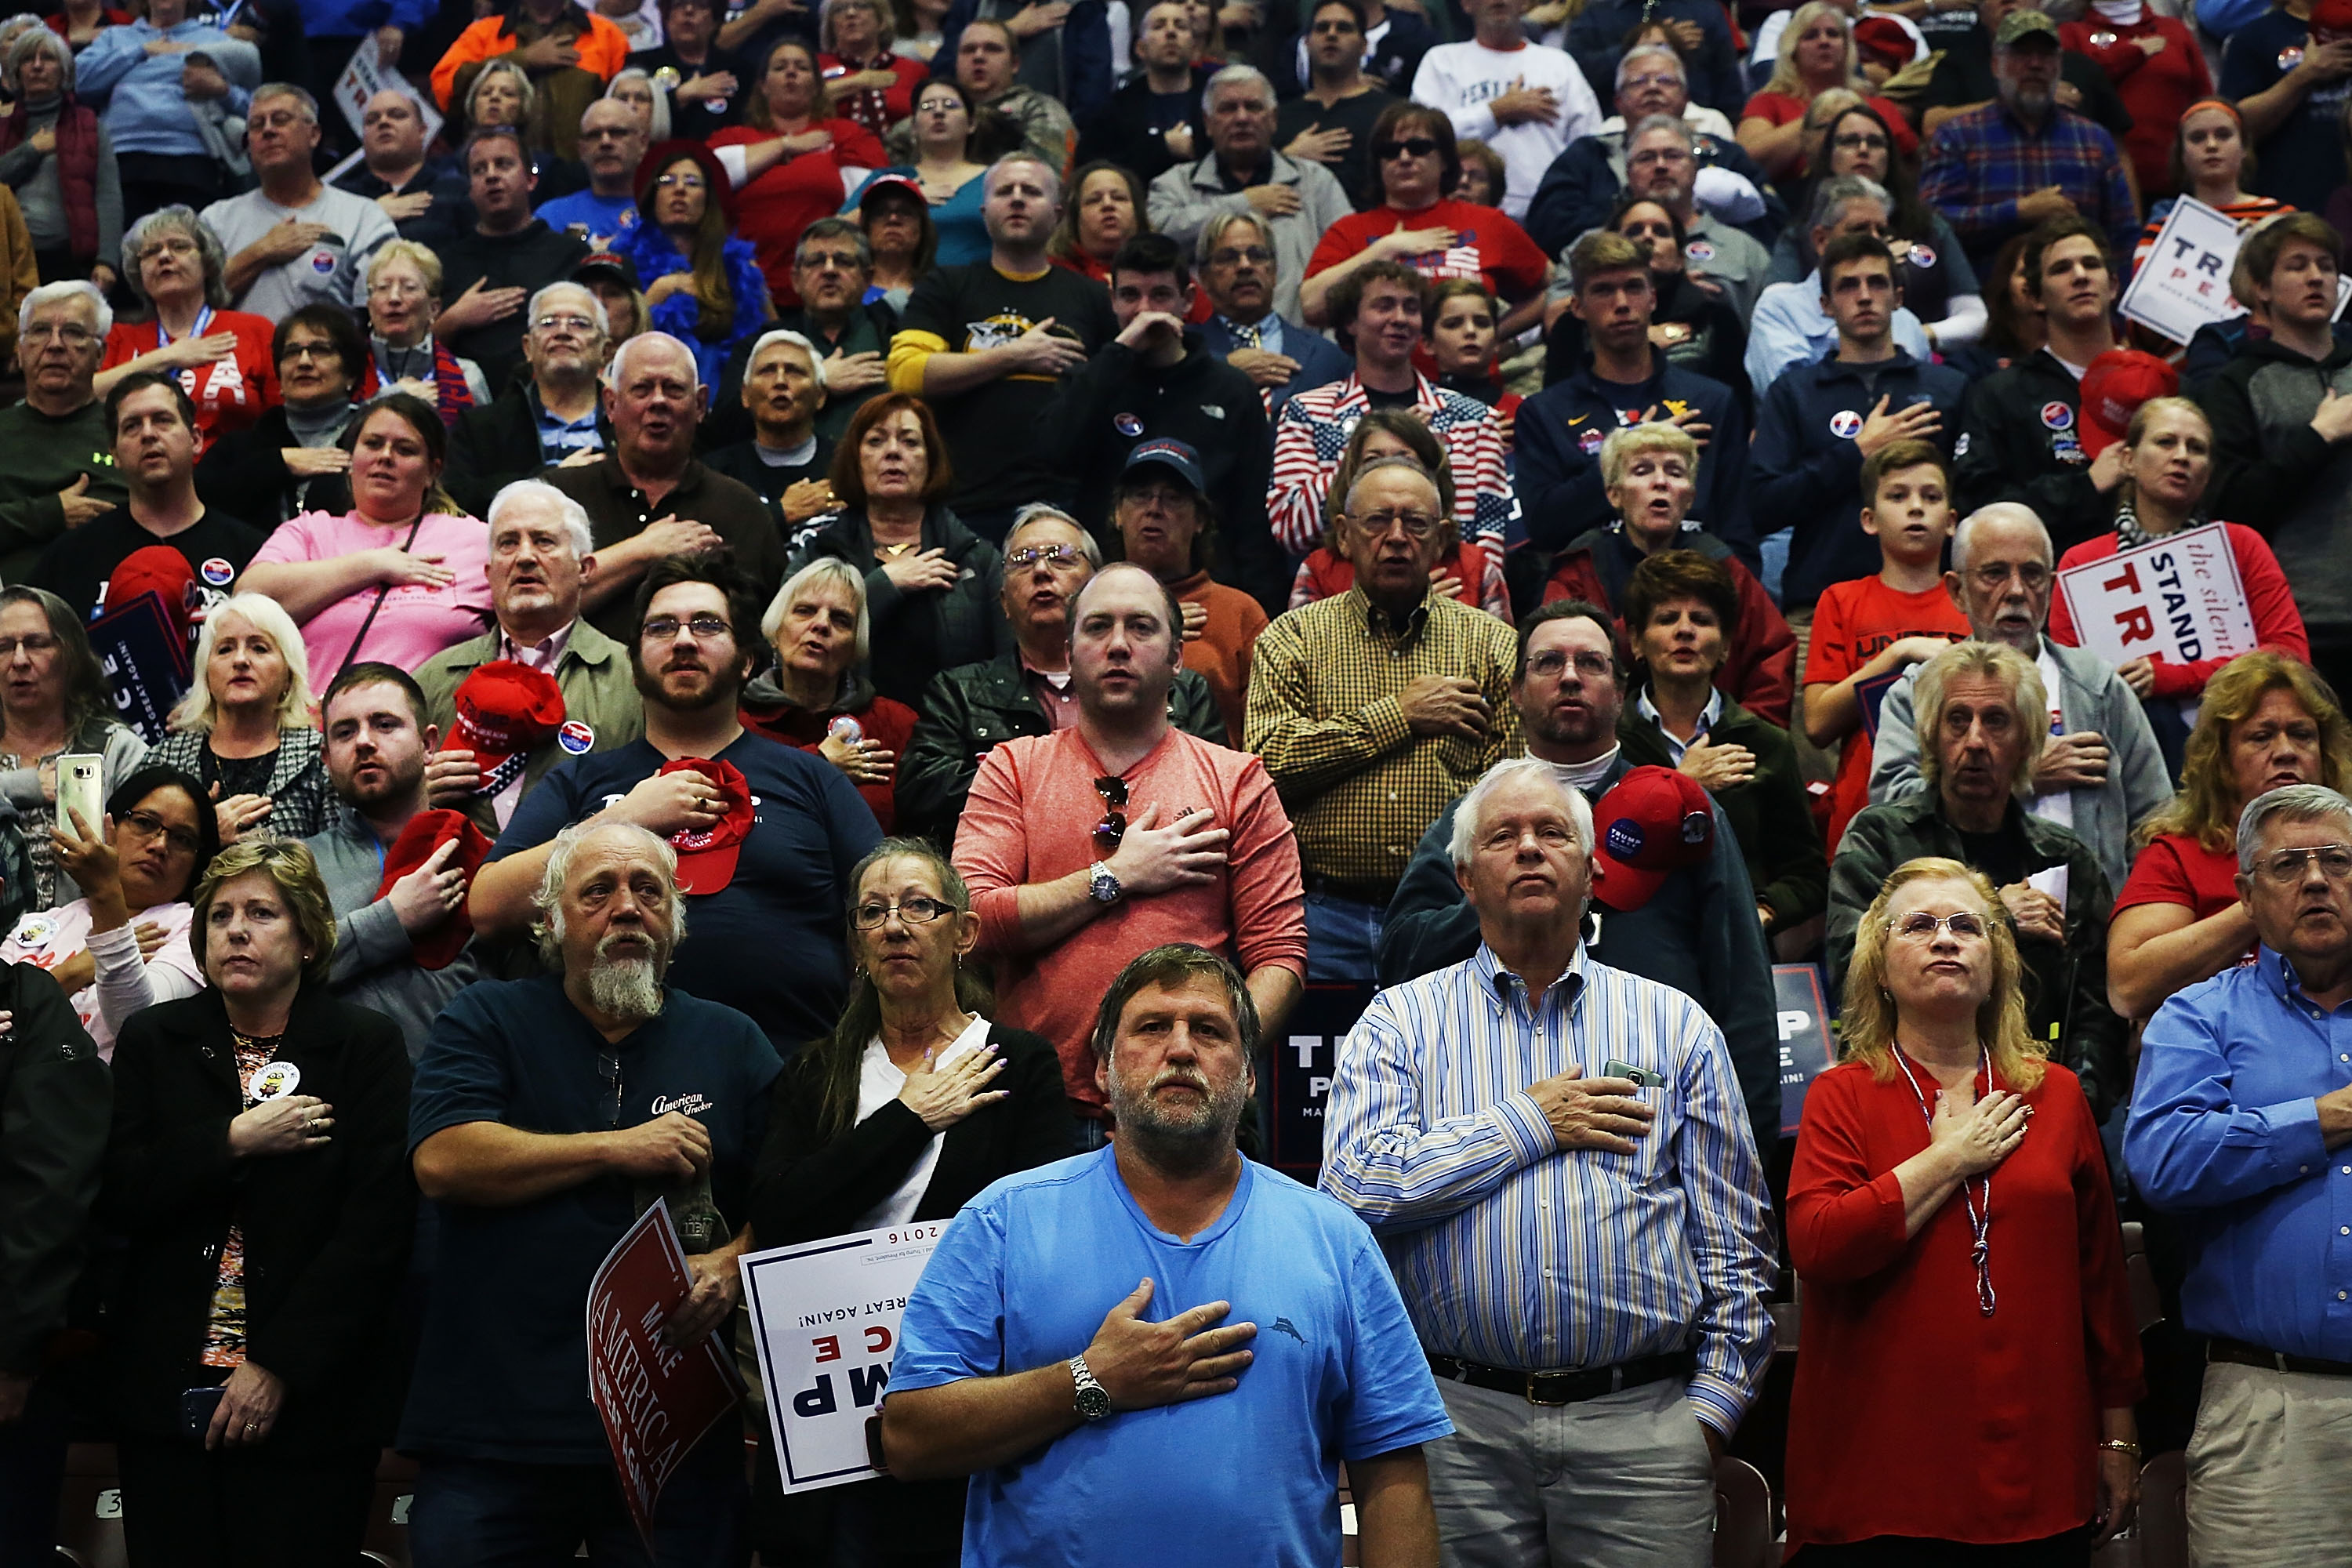 Trumpers: Seguidores de Donald Trump, en un mitin del entonces candidato republicano en Pennsylvania. (Spencer Platt/Getty Images)